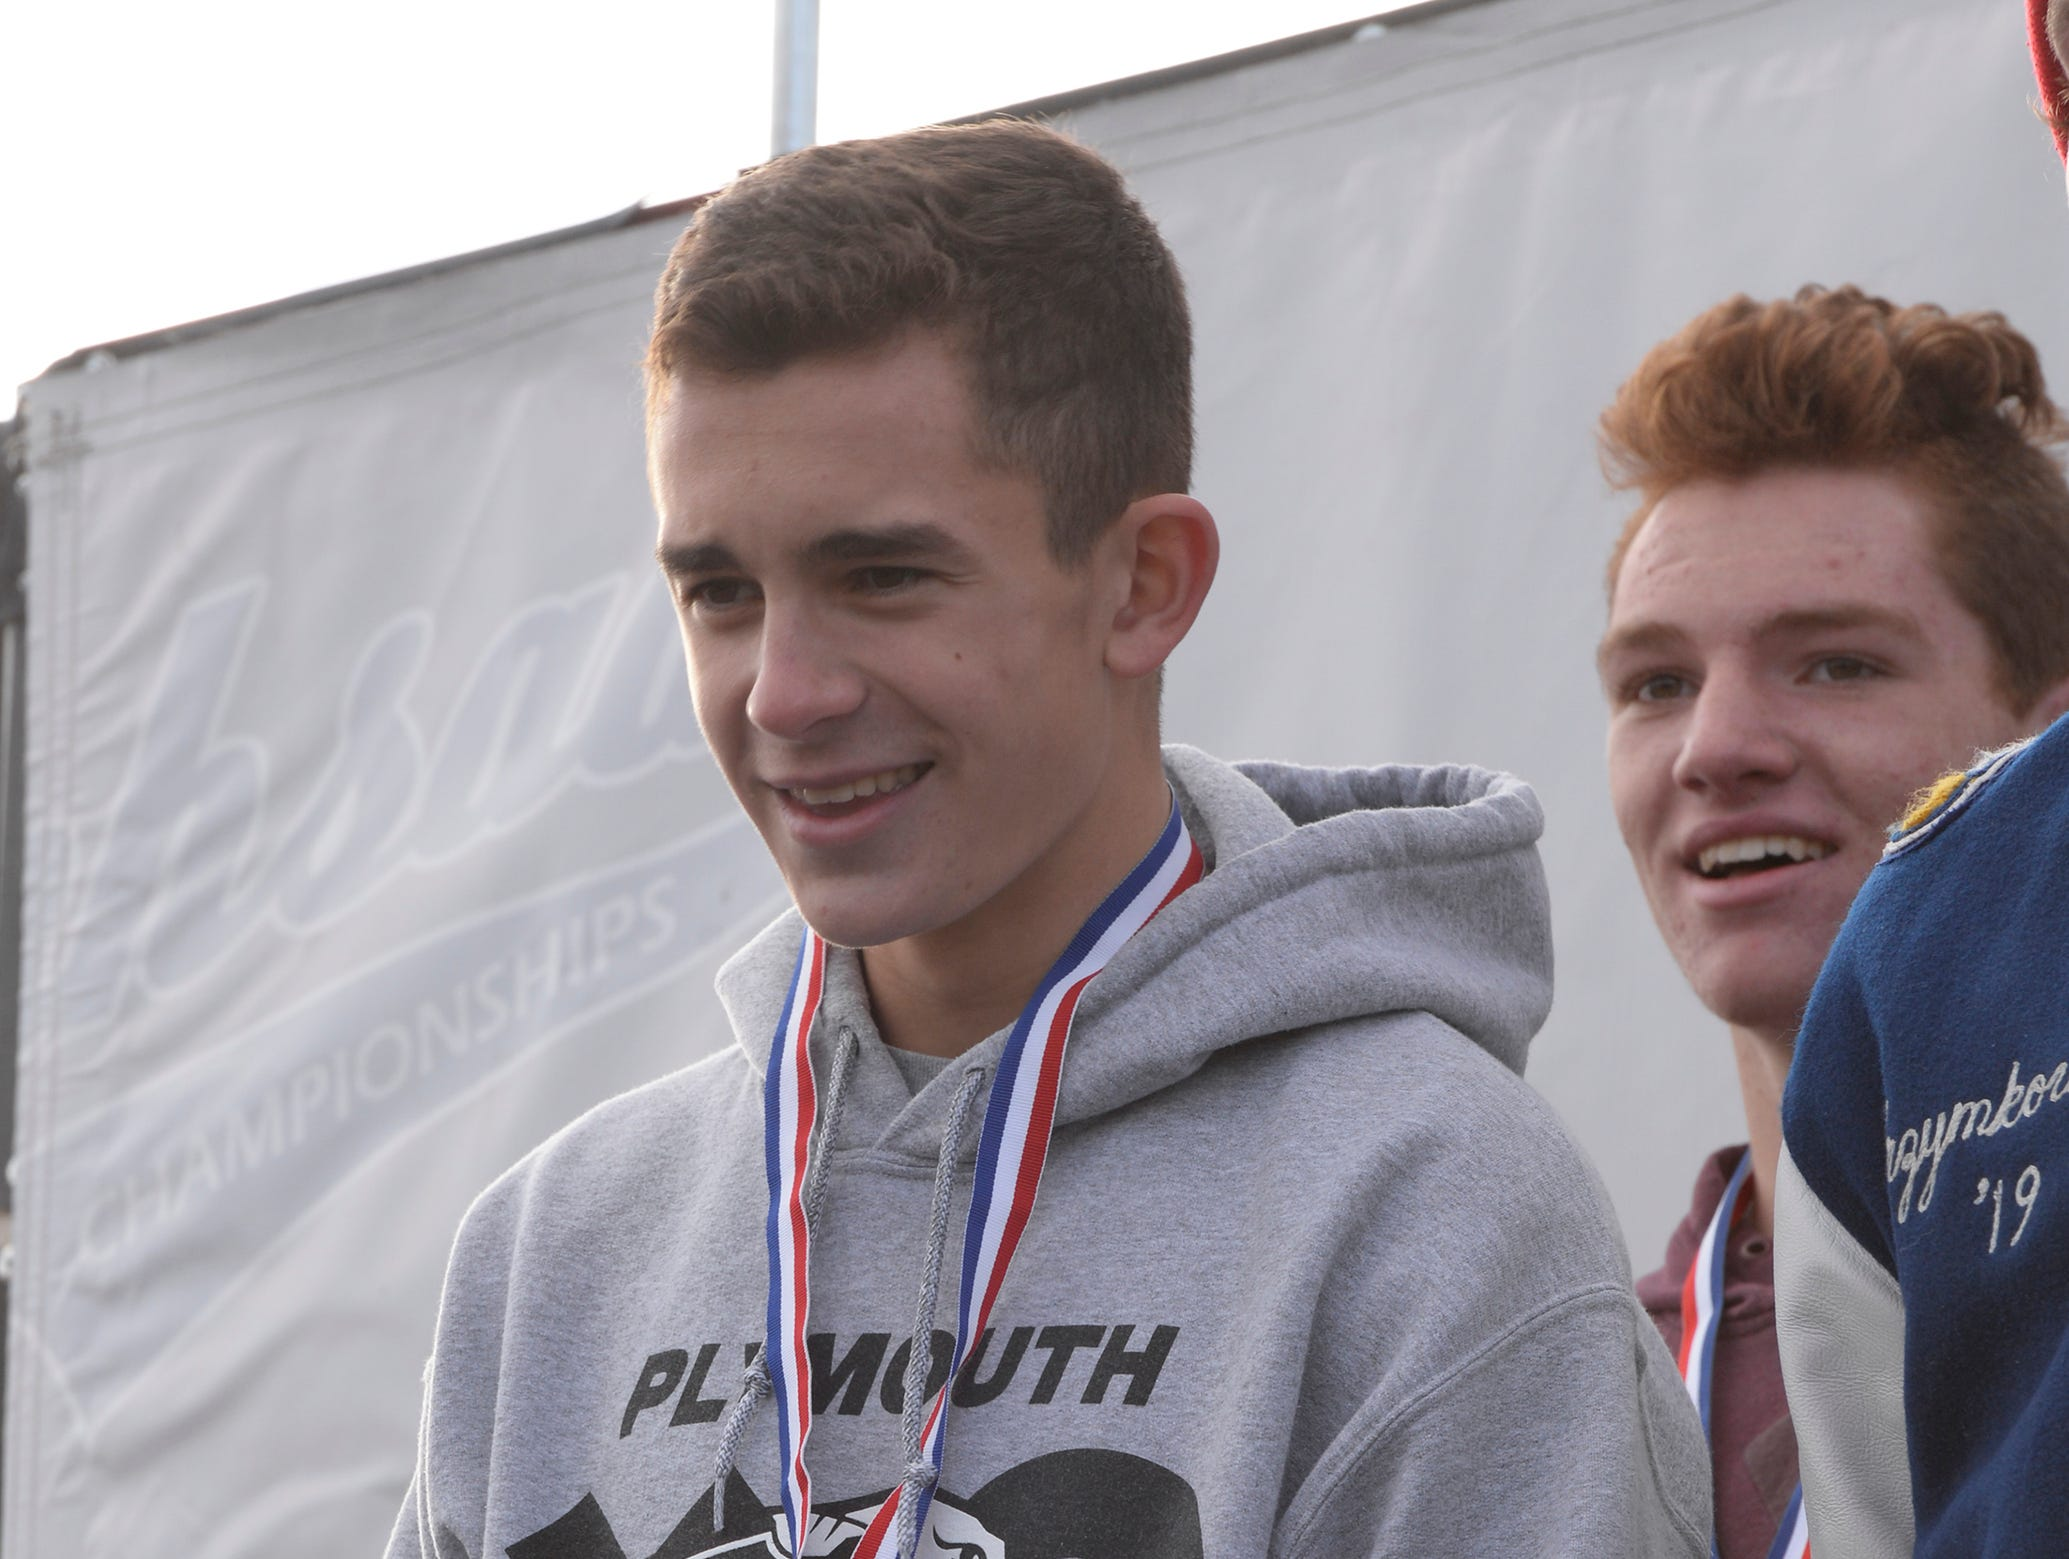 Plymouth's Carter Solomon finished second with a time of 15:18.1 at the Division 1 2018 cross country finals at Michigan International Speedway.